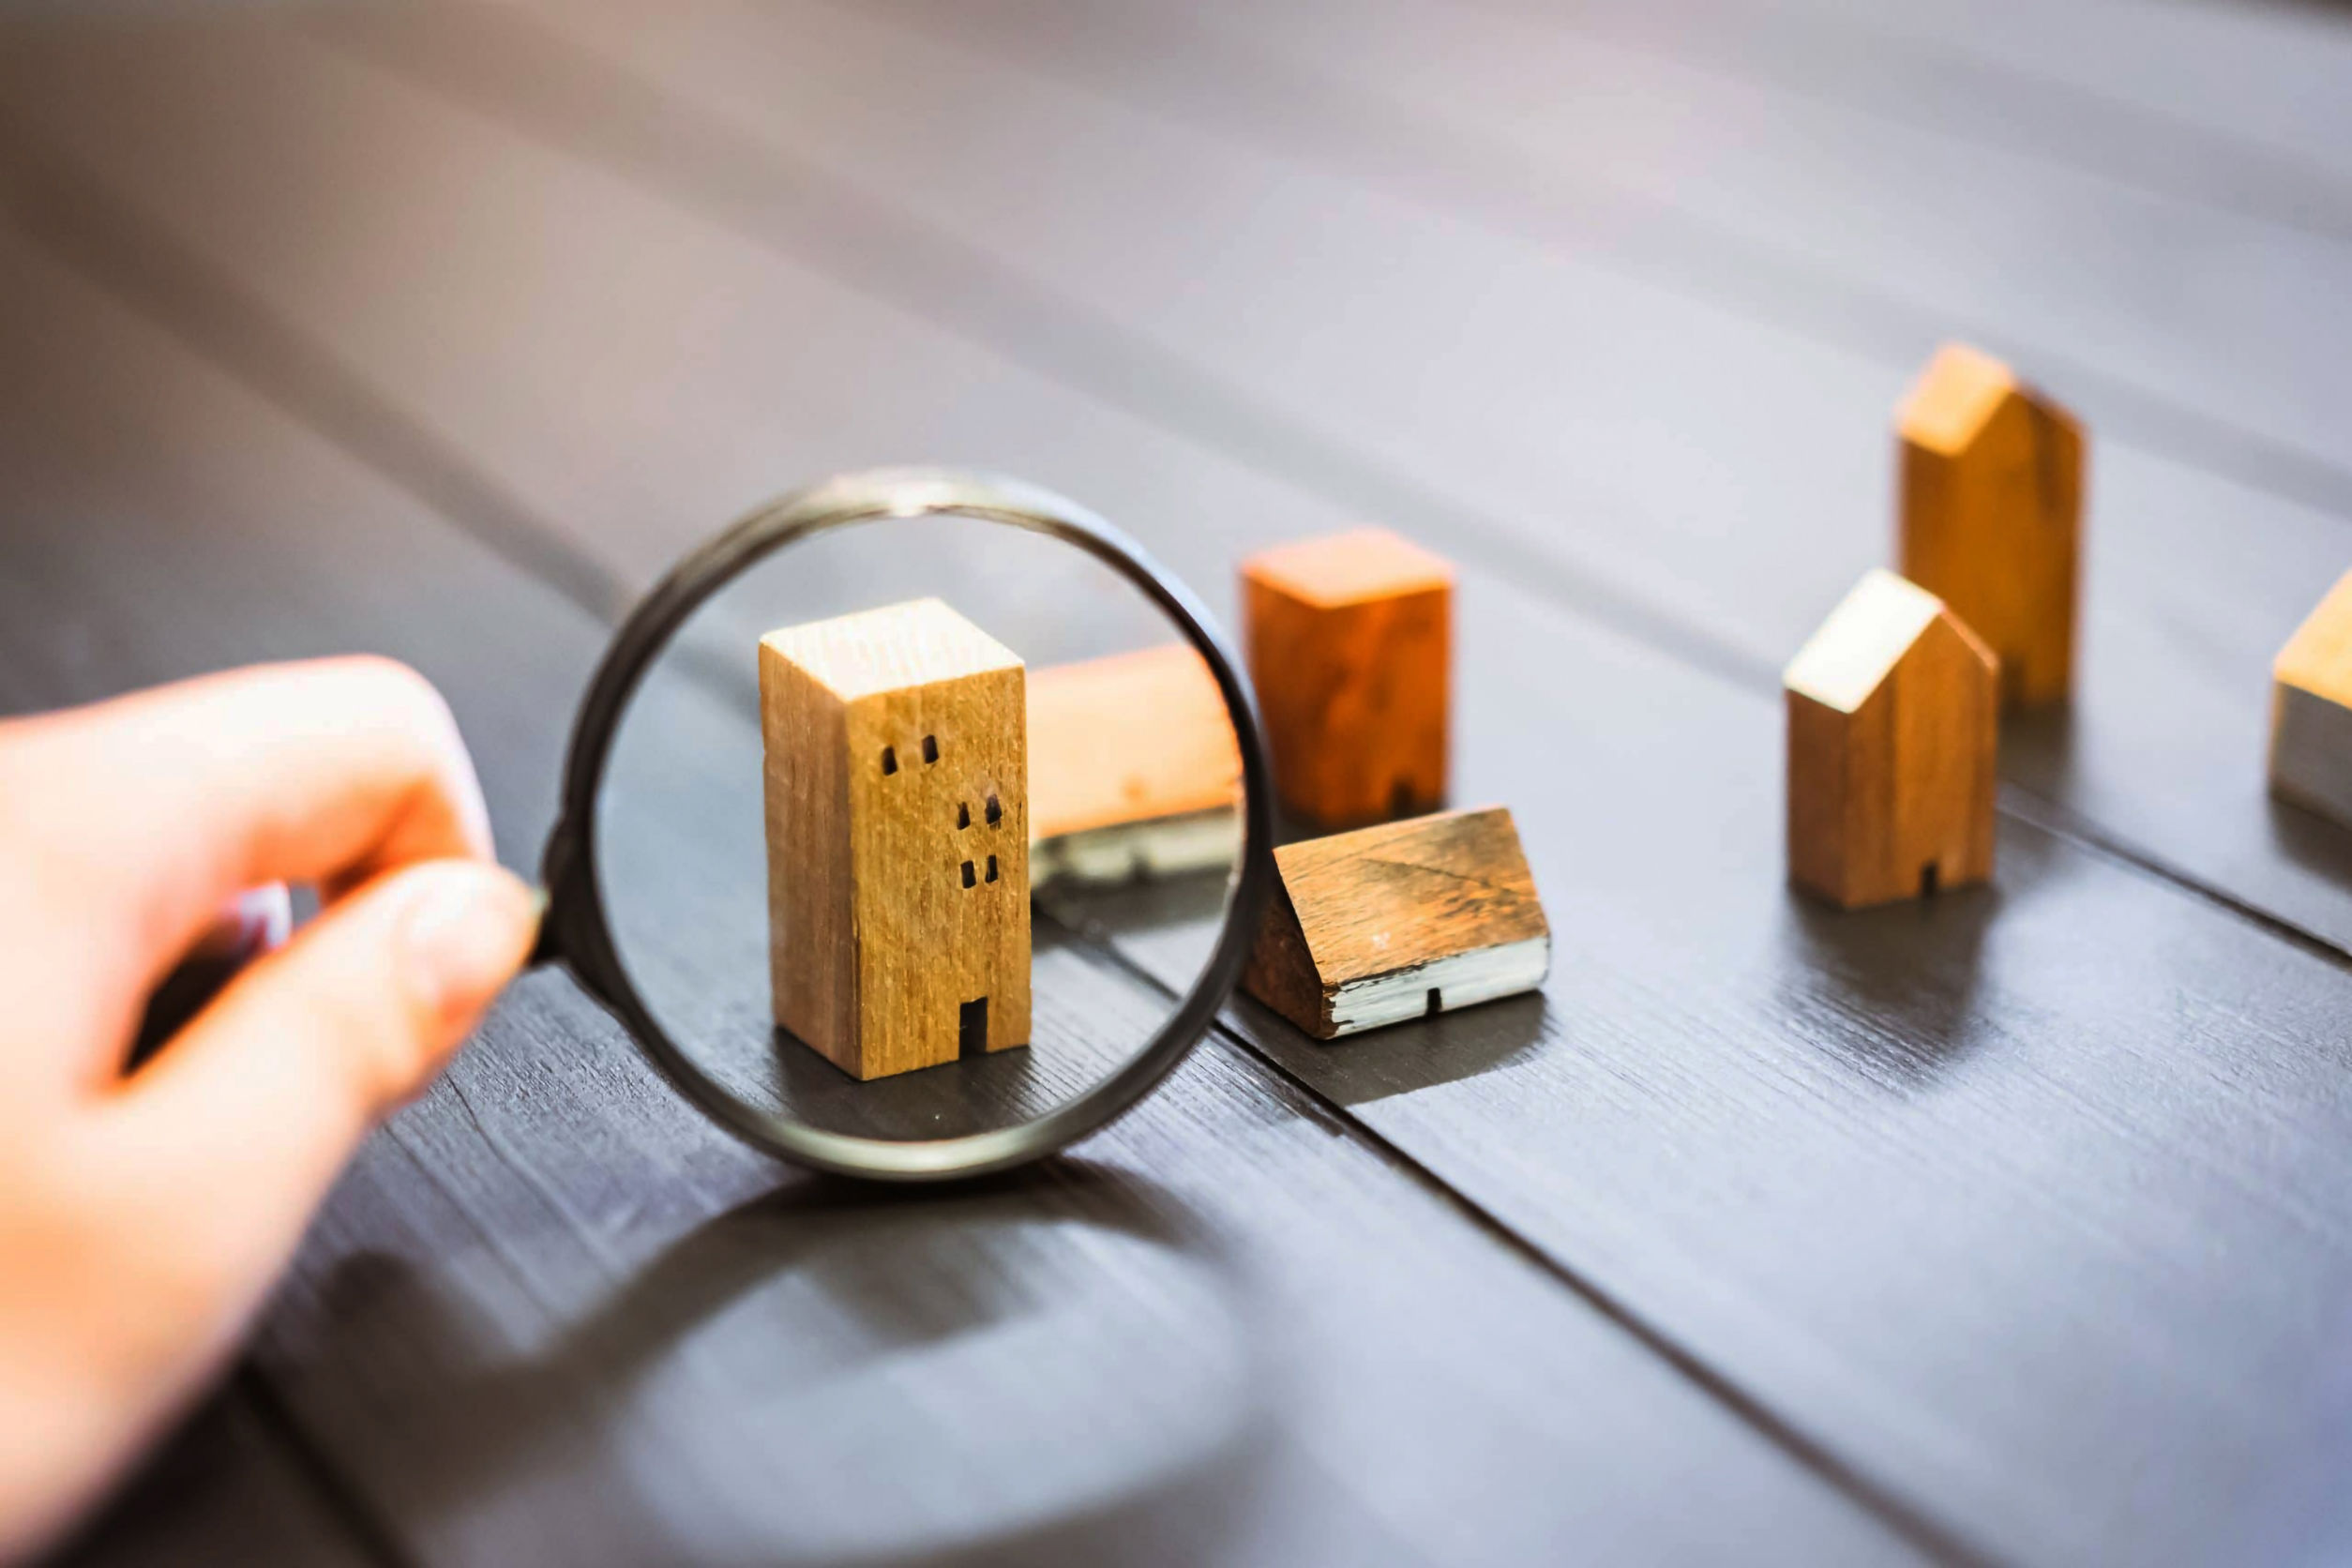 Hand holding magnifying glass and looking at house model.